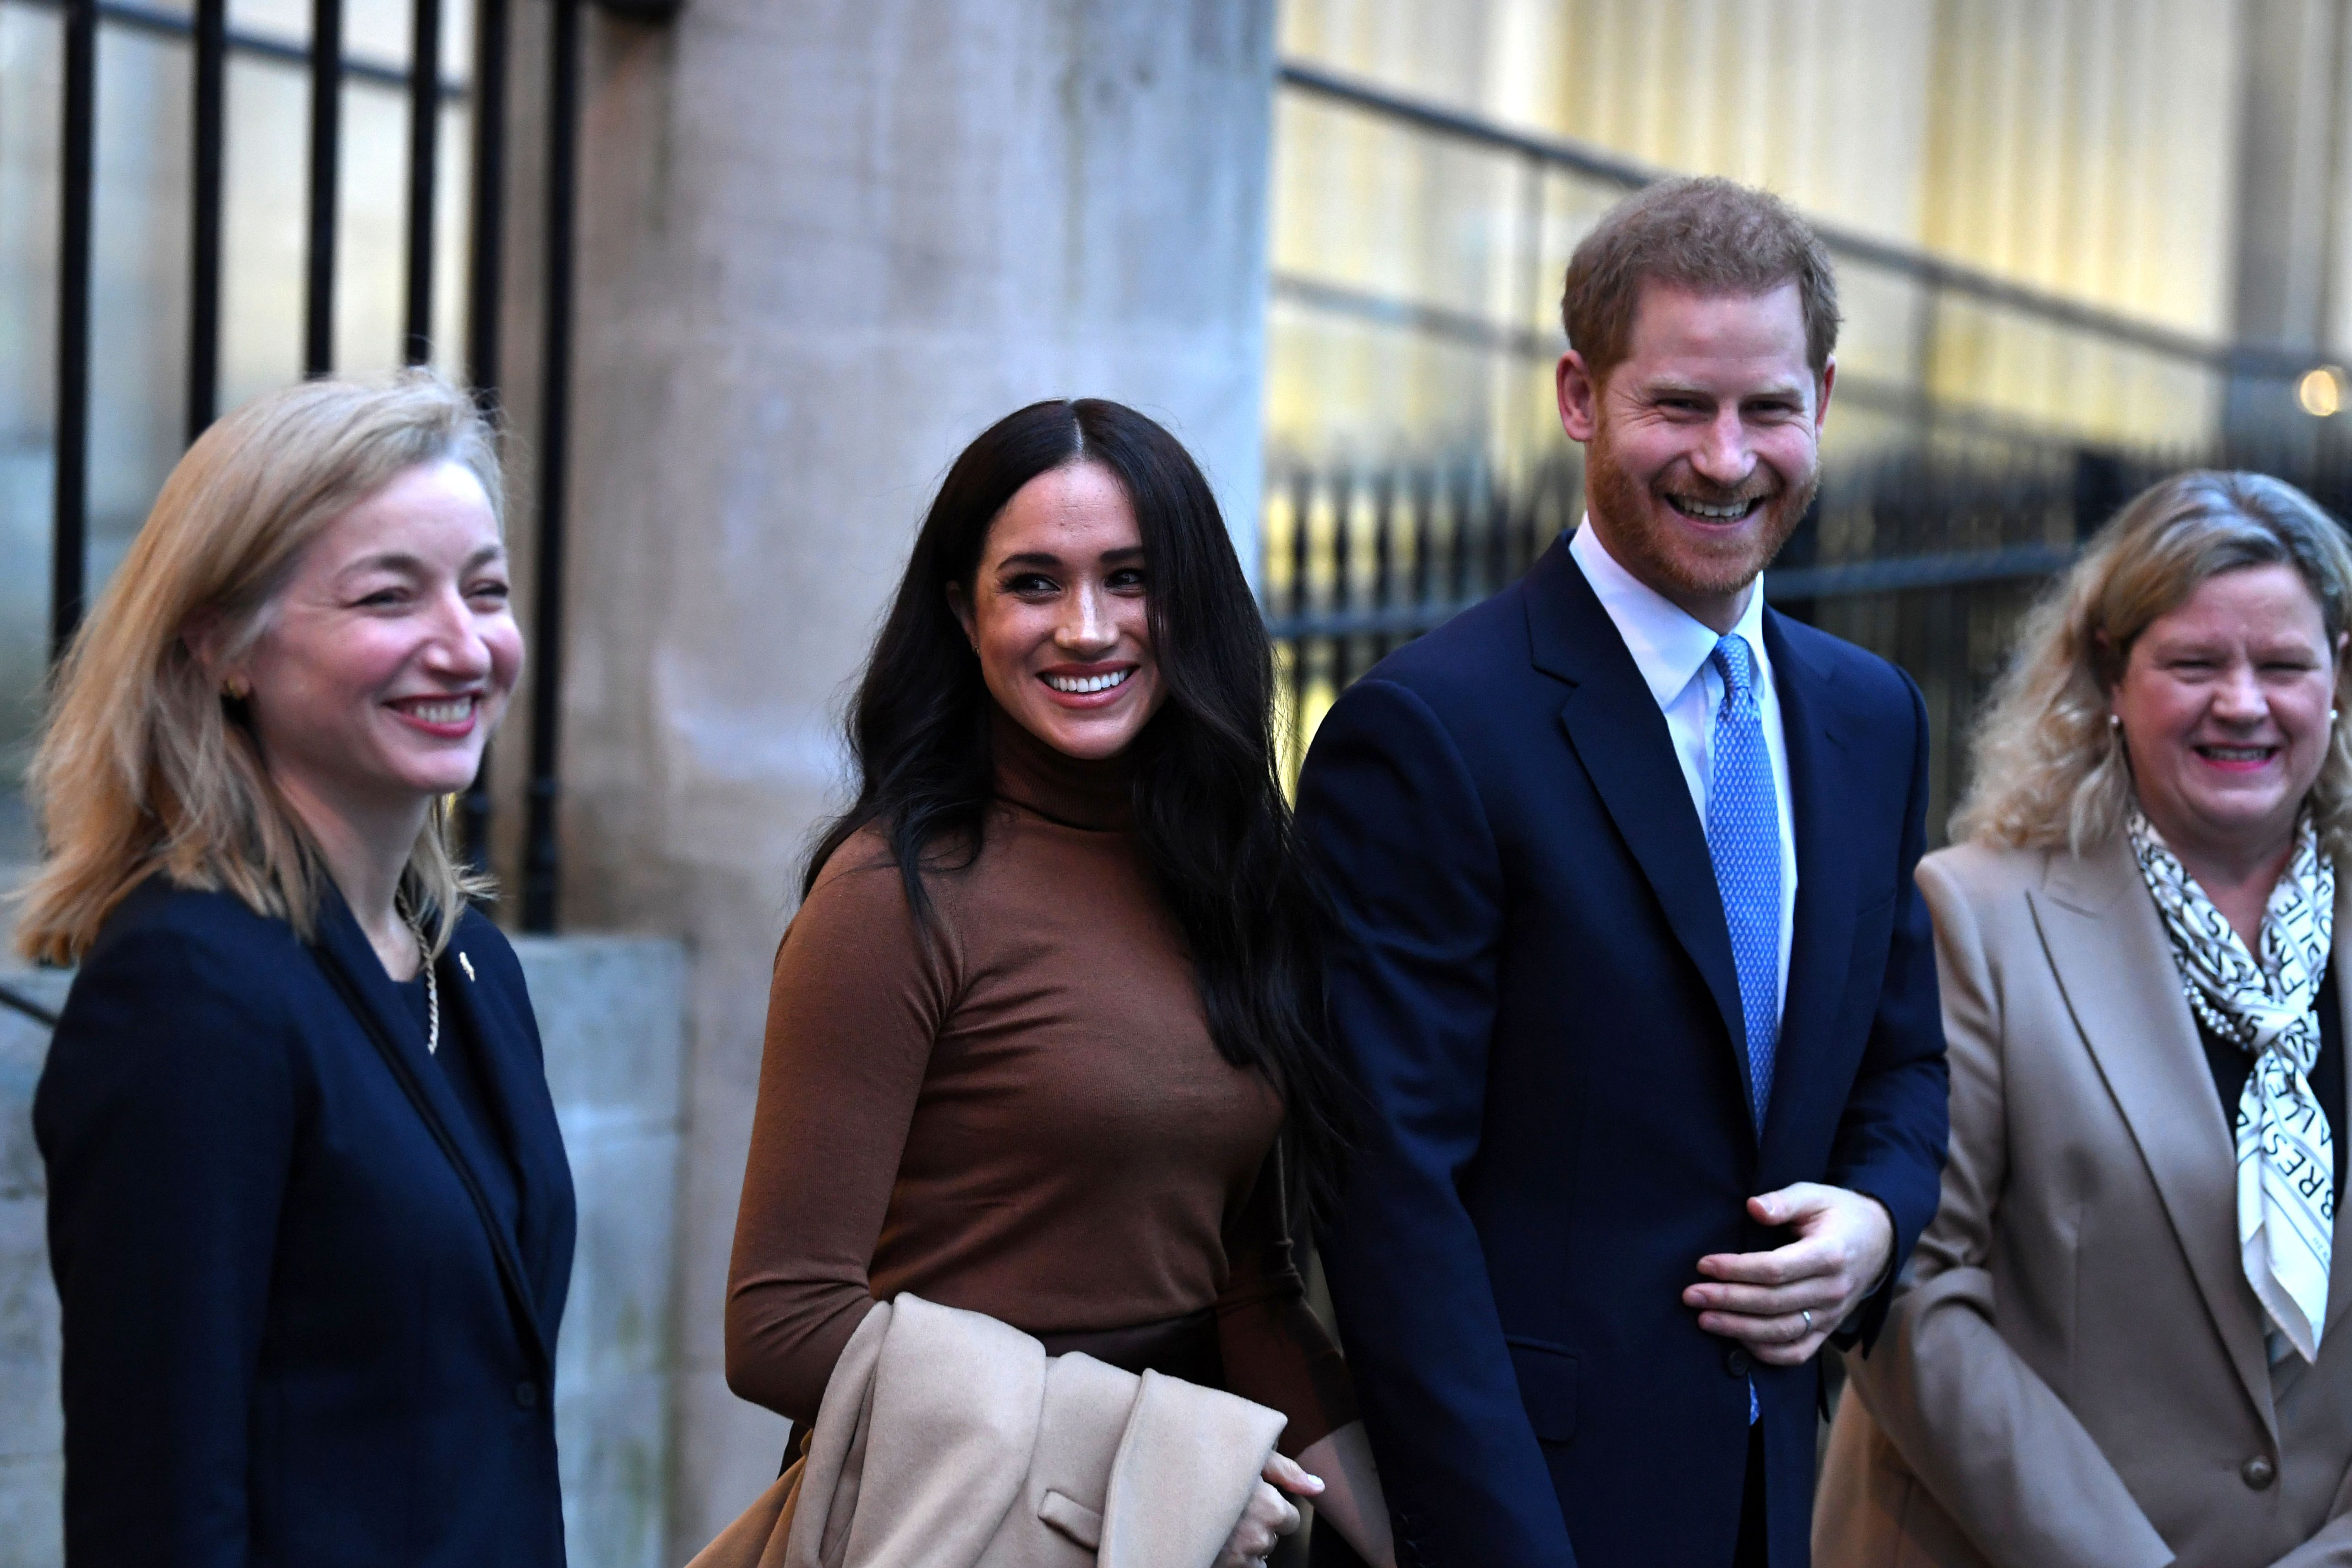 The Palace Breaks Its Silence on Report Meghan Markle and Prince Harry Could Move to Canada